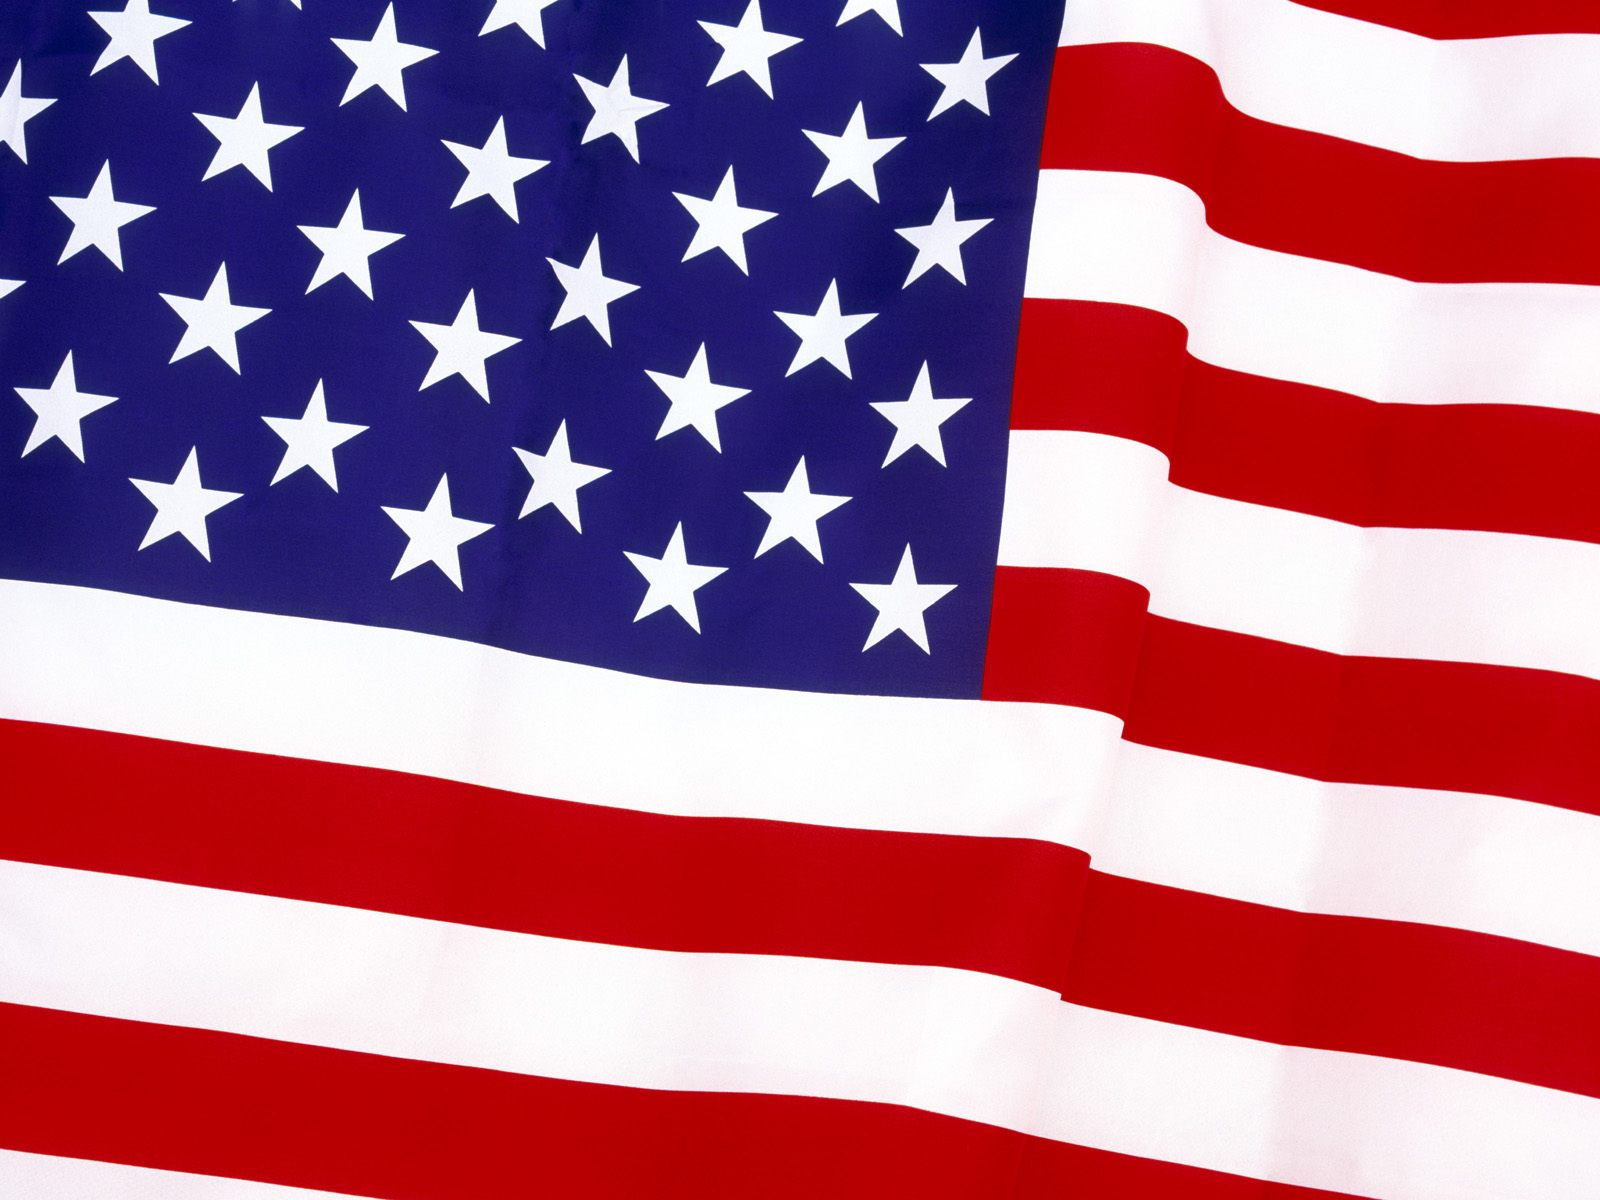 http://2.bp.blogspot.com/-2P1_7ijn8qY/T_vh4LCUdDI/AAAAAAAAFjU/9PM9Oz51XjQ/s1600/usa+flag+wallpaper+hd-1.jpg